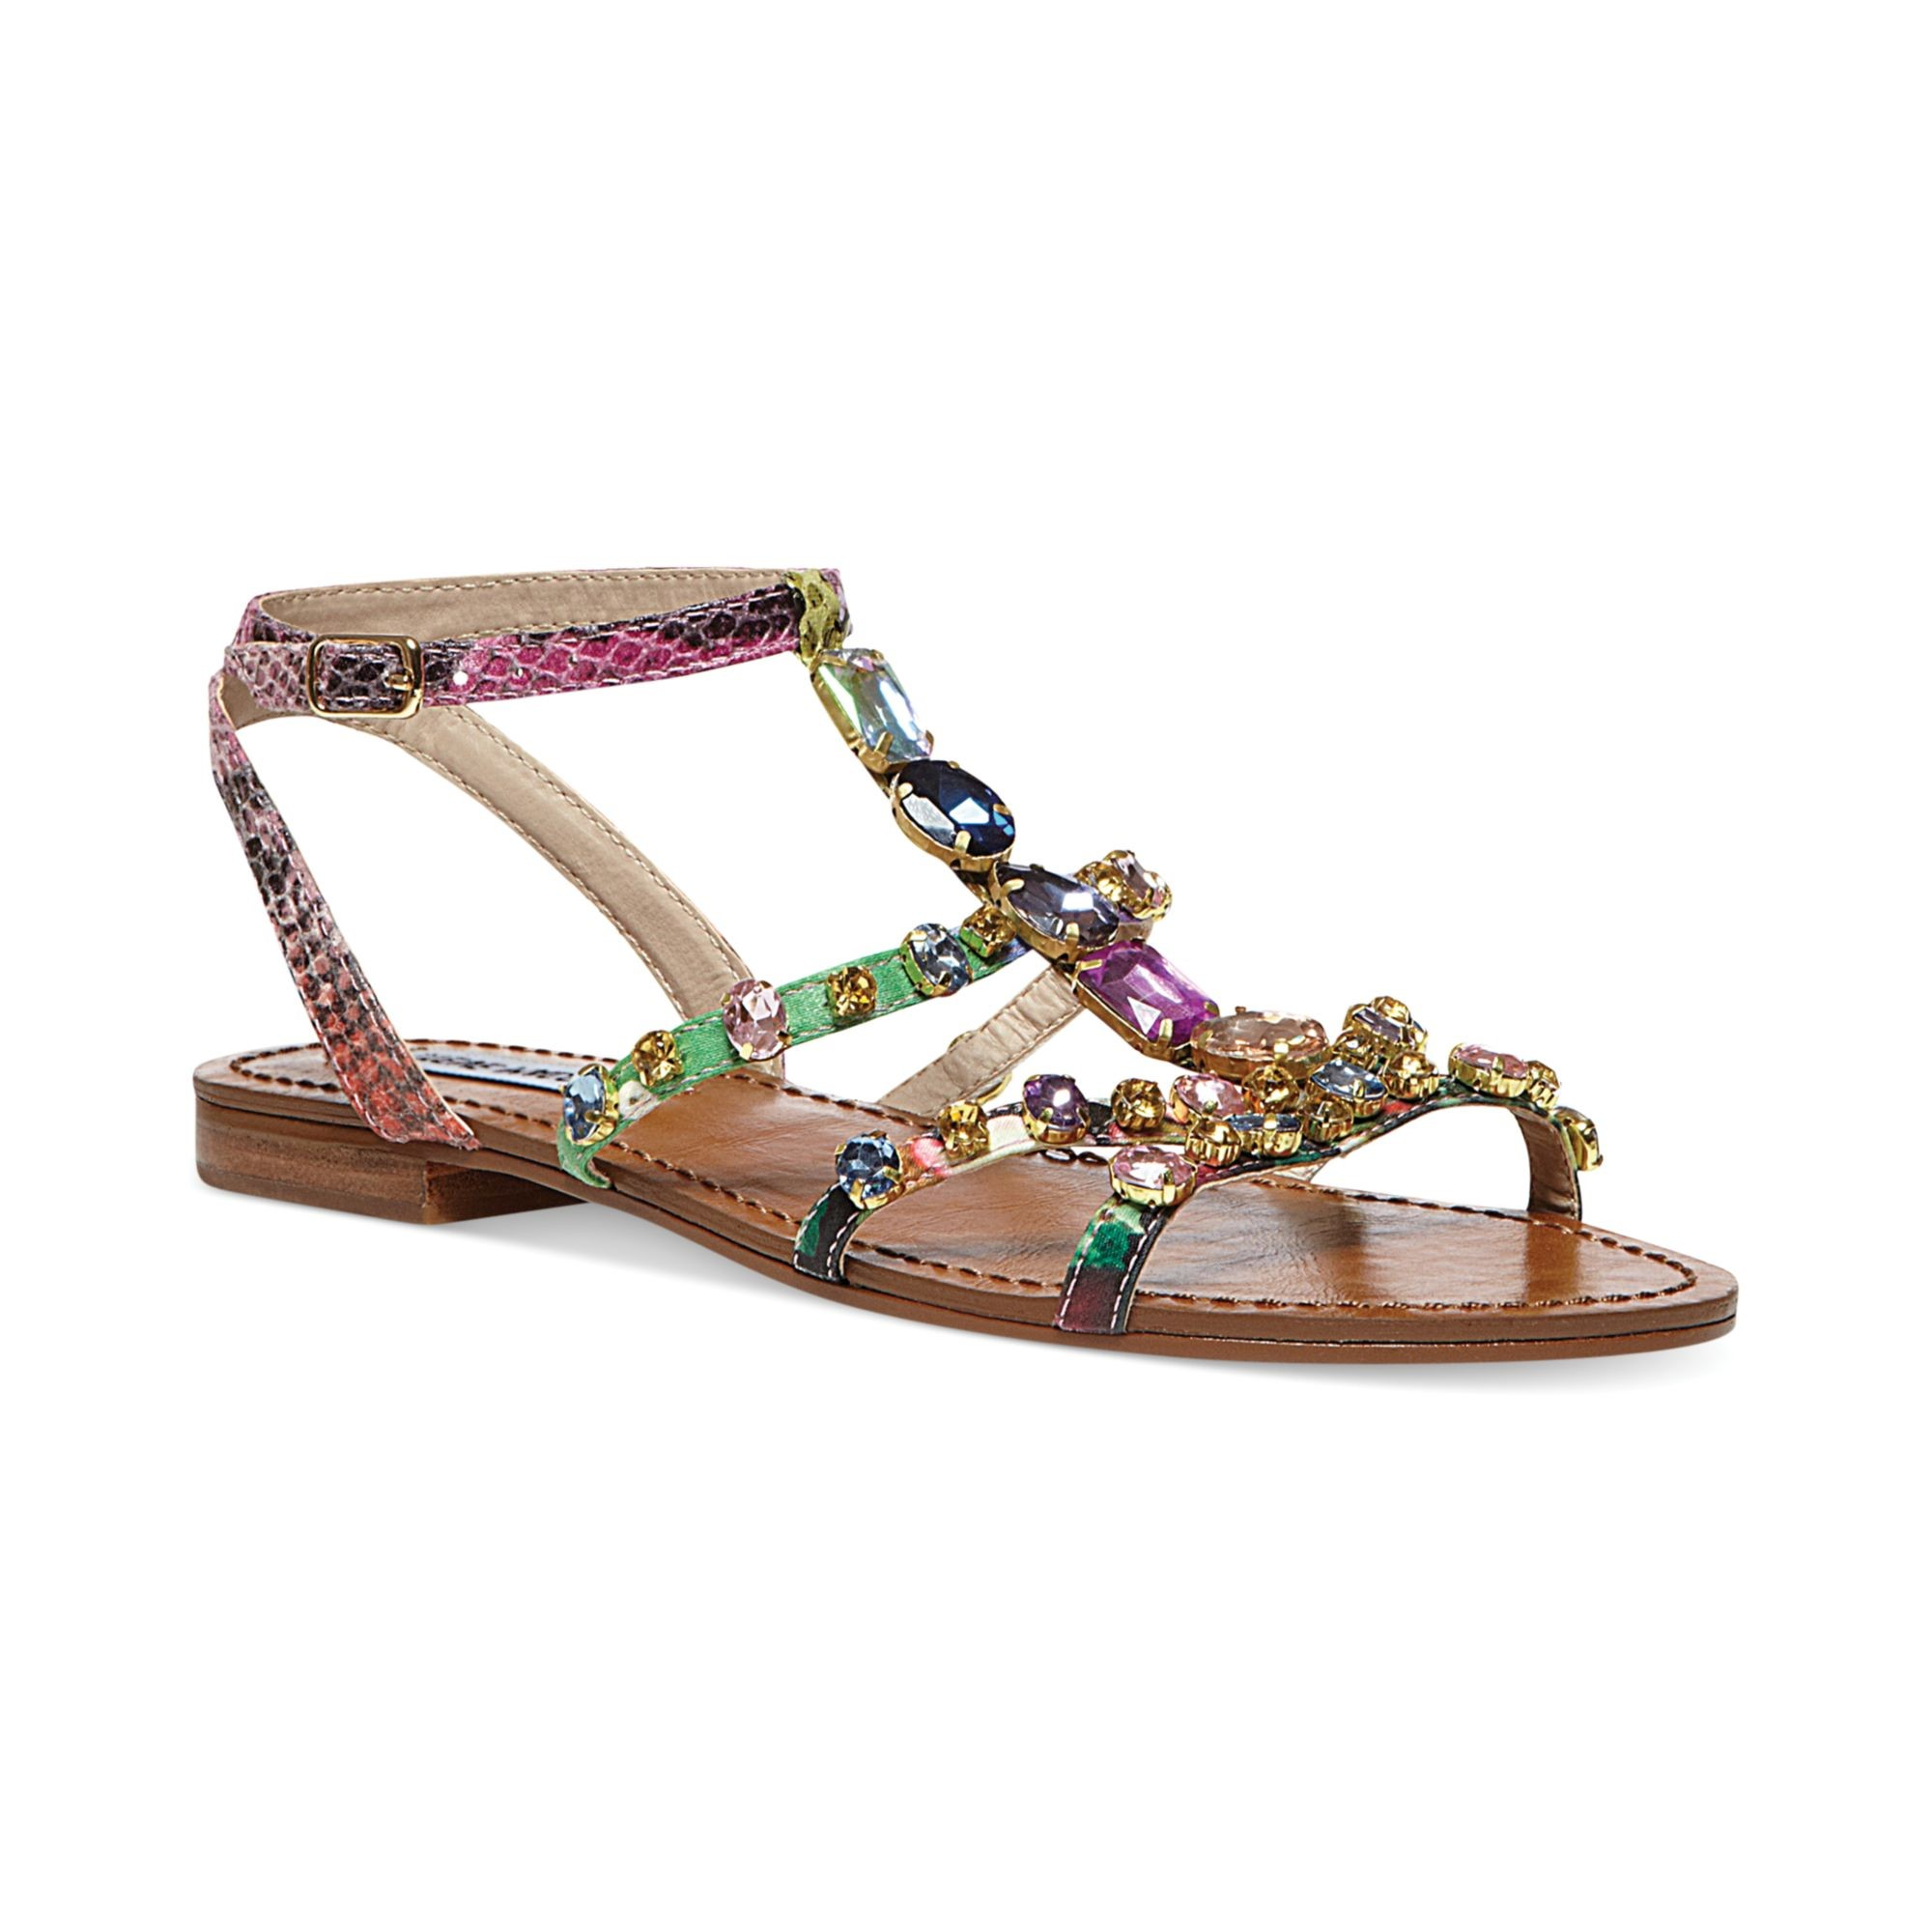 Flat Sandals essential shoes Essential Shoes Every Women Should Have – 2018 Flat Sandals